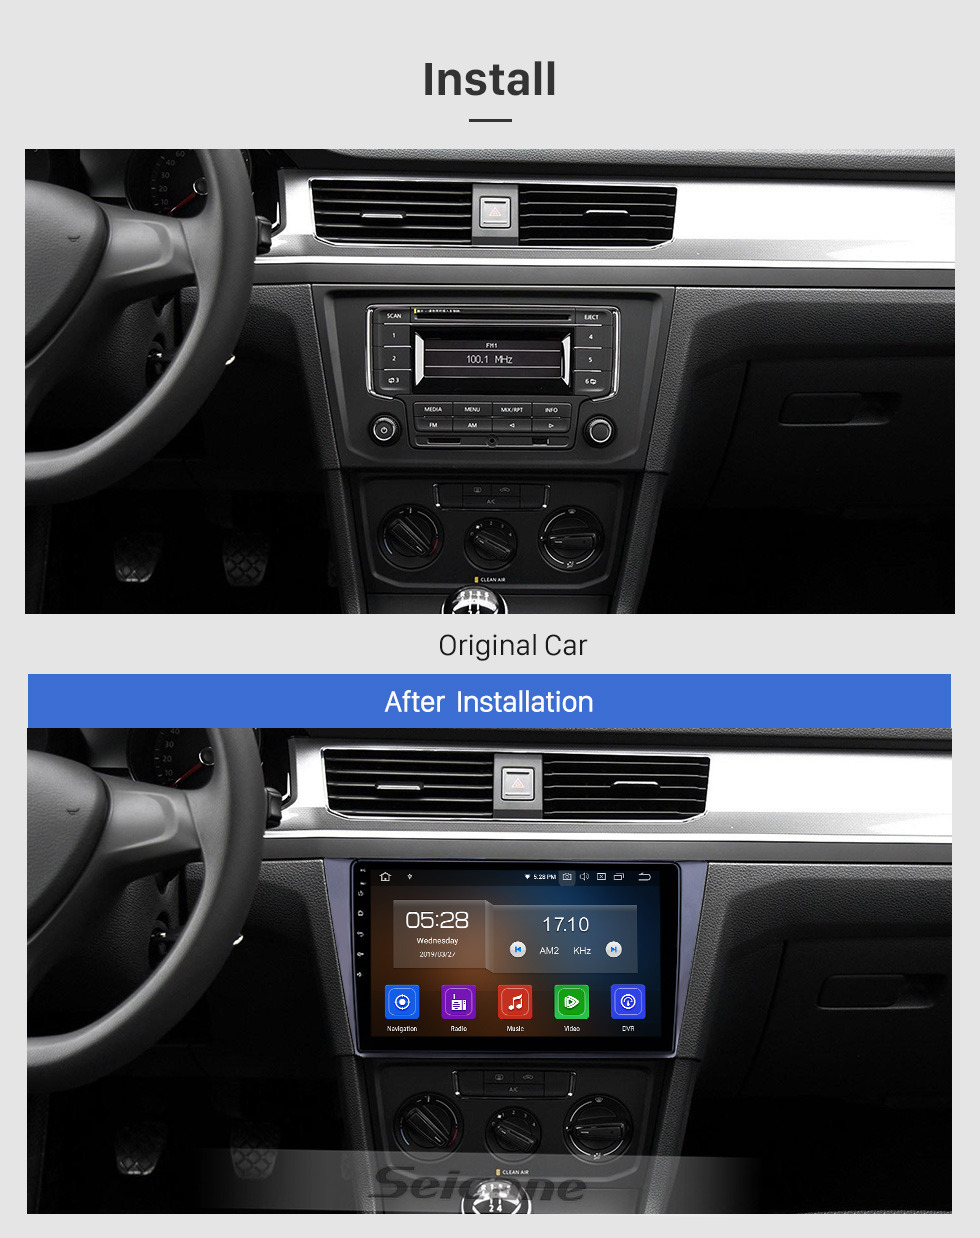 Seicane 10.1 inch Android 9.0 Radio for 2016-2018 VW Volkswagen Bora Bluetooth HD Touchscreen GPS Navigation Carplay USB support TPMS DAB+ DVR